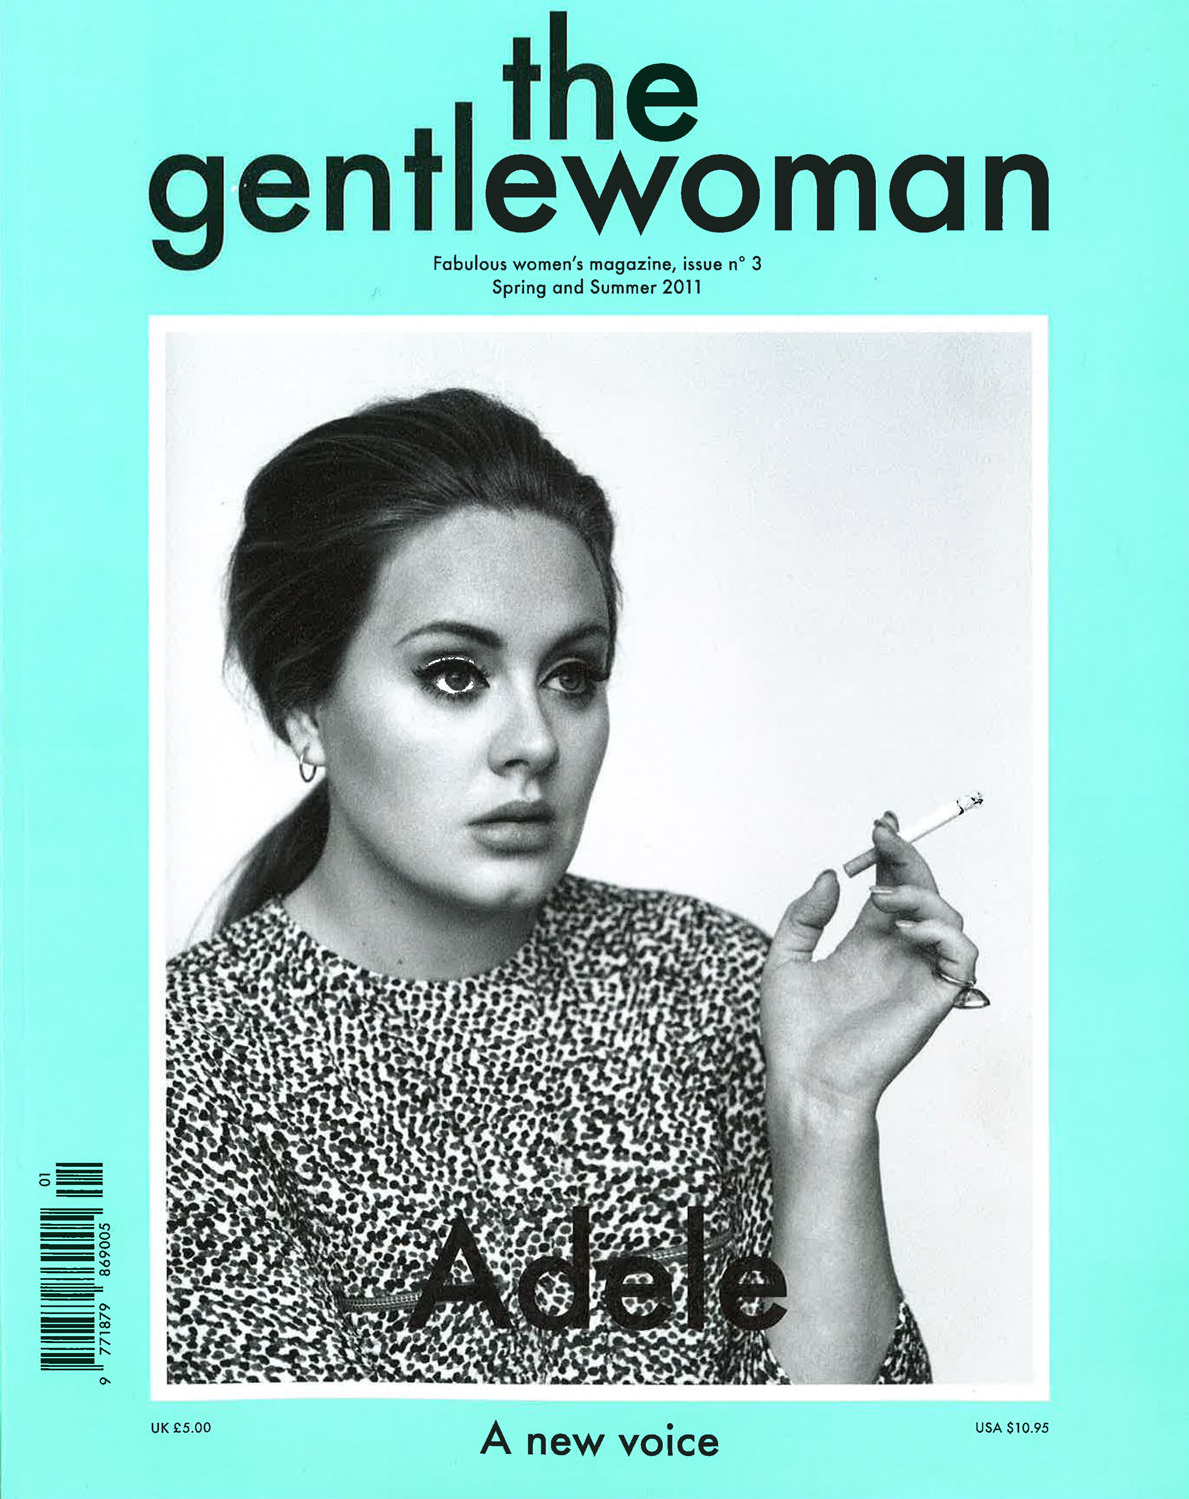 Adele_The_Gentlewoman.png